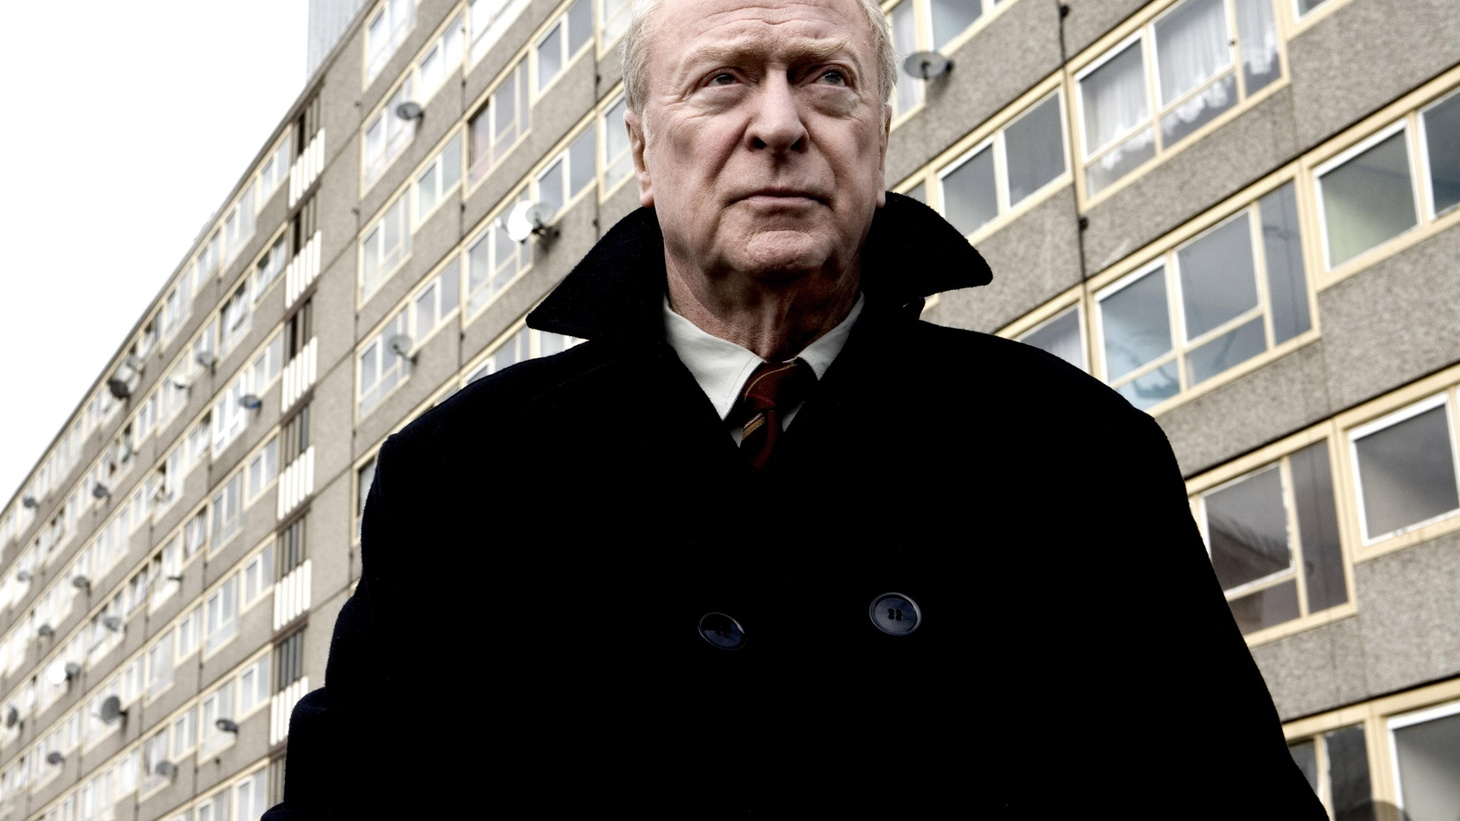 It's the voice, not just his own speaking voice but the way a character sounds that matters to Michael Caine (Get Carter, The Italian Job, The Cider House Rules, Alfie, The Dark Knight, Zulu) . His new film is Harry  Brown, and he'll discusses sound.